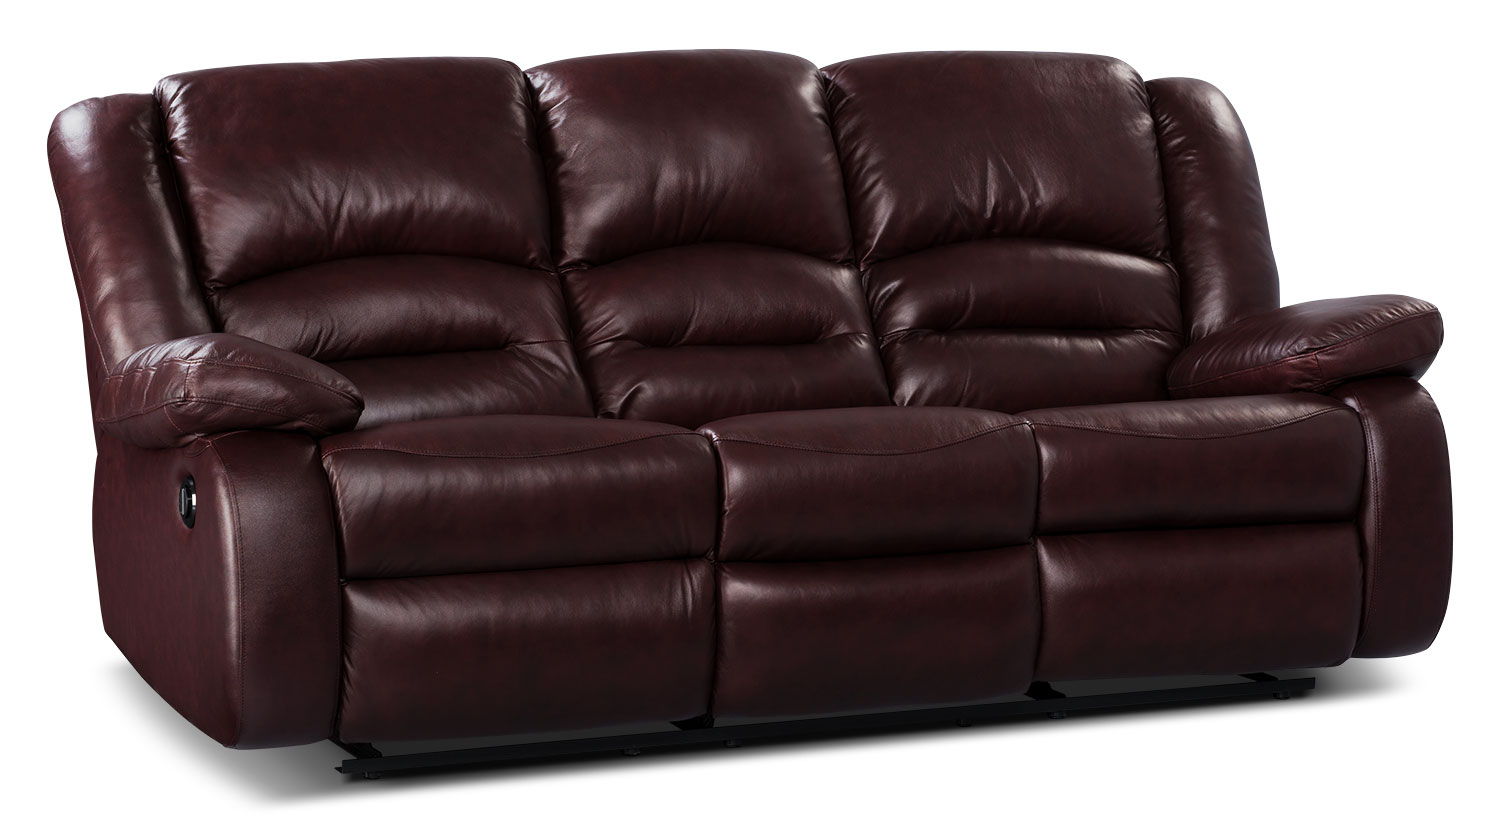 Toreno Genuine Leather Power Reclining Sofa Burgundy